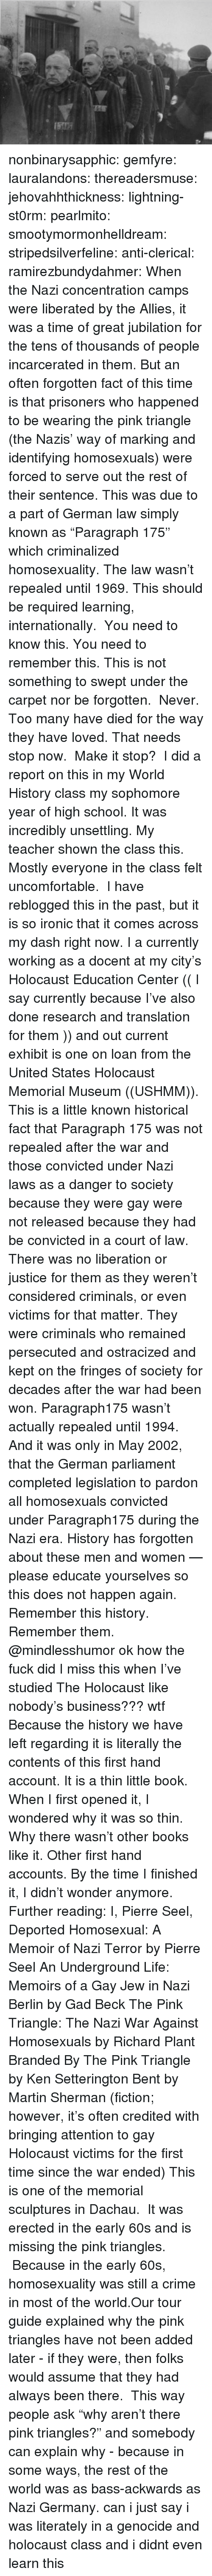 "Credited: nonbinarysapphic:  gemfyre:  lauralandons:  thereadersmuse:  jehovahhthickness:  lightning-st0rm:  pearlmito:  smootymormonhelldream:  stripedsilverfeline:  anti-clerical:  ramirezbundydahmer:  When the Nazi concentration camps were liberated by the Allies, it was a time of great jubilation for the tens of thousands of people incarcerated in them. But an often forgotten fact of this time is that prisoners who happened to be wearing the pink triangle (the Nazis' way of marking and identifying homosexuals) were forced to serve out the rest of their sentence. This was due to a part of German law simply known as ""Paragraph 175"" which criminalized homosexuality. The law wasn't repealed until 1969.  This should be required learning, internationally.   You need to know this. You need to remember this. This is not something to swept under the carpet nor be forgotten.  Never. Too many have died for the way they have loved. That needs stop now.  Make it stop?   I did a report on this in my World History class my sophomore year of high school. It was incredibly unsettling.  My teacher shown the class this. Mostly everyone in the class felt uncomfortable.   I have reblogged this in the past, but it is so ironic that it comes across my dash right now. I a currently working as a docent at my city's Holocaust Education Center (( I say currently because I've also done research and translation for them )) and out current exhibit is one on loan from the United States Holocaust Memorial Museum ((USHMM)). This is a little known historical fact that Paragraph 175 was not repealed after the war and those convicted under Nazi laws as a danger to society because they were gay were not released because they had be convicted in a court of law. There was no liberation or justice for them as they weren't considered criminals, or even victims for that matter. They were criminals who remained persecuted and ostracized and kept on the fringes of society for decades after the war had been won. Paragraph175 wasn't actually repealed until 1994. And it was only in May 2002, that the German parliament completed legislation to pardon all homosexuals convicted under Paragraph175 during the Nazi era. History has forgotten about these men and women — please educate yourselves so this does not happen again. Remember this history. Remember them.  @mindlesshumor ok how the fuck did I miss this when I've studied The Holocaust like nobody's business??? wtf  Because the history we have left regarding it is literally the contents of this first hand account. It is a thin little book. When I first opened it, I wondered why it was so thin. Why there wasn't other books like it. Other first hand accounts. By the time I finished it, I didn't wonder anymore.  Further reading: I, Pierre Seel, Deported Homosexual: A Memoir of Nazi Terror by Pierre Seel An Underground Life: Memoirs of a Gay Jew in Nazi Berlin by Gad Beck The Pink Triangle: The Nazi War Against Homosexuals by Richard Plant Branded By The Pink Triangle by Ken Setterington Bent by Martin Sherman (fiction; however, it's often credited with bringing attention to gay Holocaust victims for the first time since the war ended)  This is one of the memorial sculptures in Dachau.  It was erected in the early 60s and is missing the pink triangles.  Because in the early 60s, homosexuality was still a crime in most of the world.Our tour guide explained why the pink triangles have not been added later - if they were, then folks would assume that they had always been there.  This way people ask ""why aren't there pink triangles?"" and somebody can explain why - because in some ways, the rest of the world was as bass-ackwards as Nazi Germany.   can i just say i was literately in a genocide and holocaust class and i didnt even learn this"